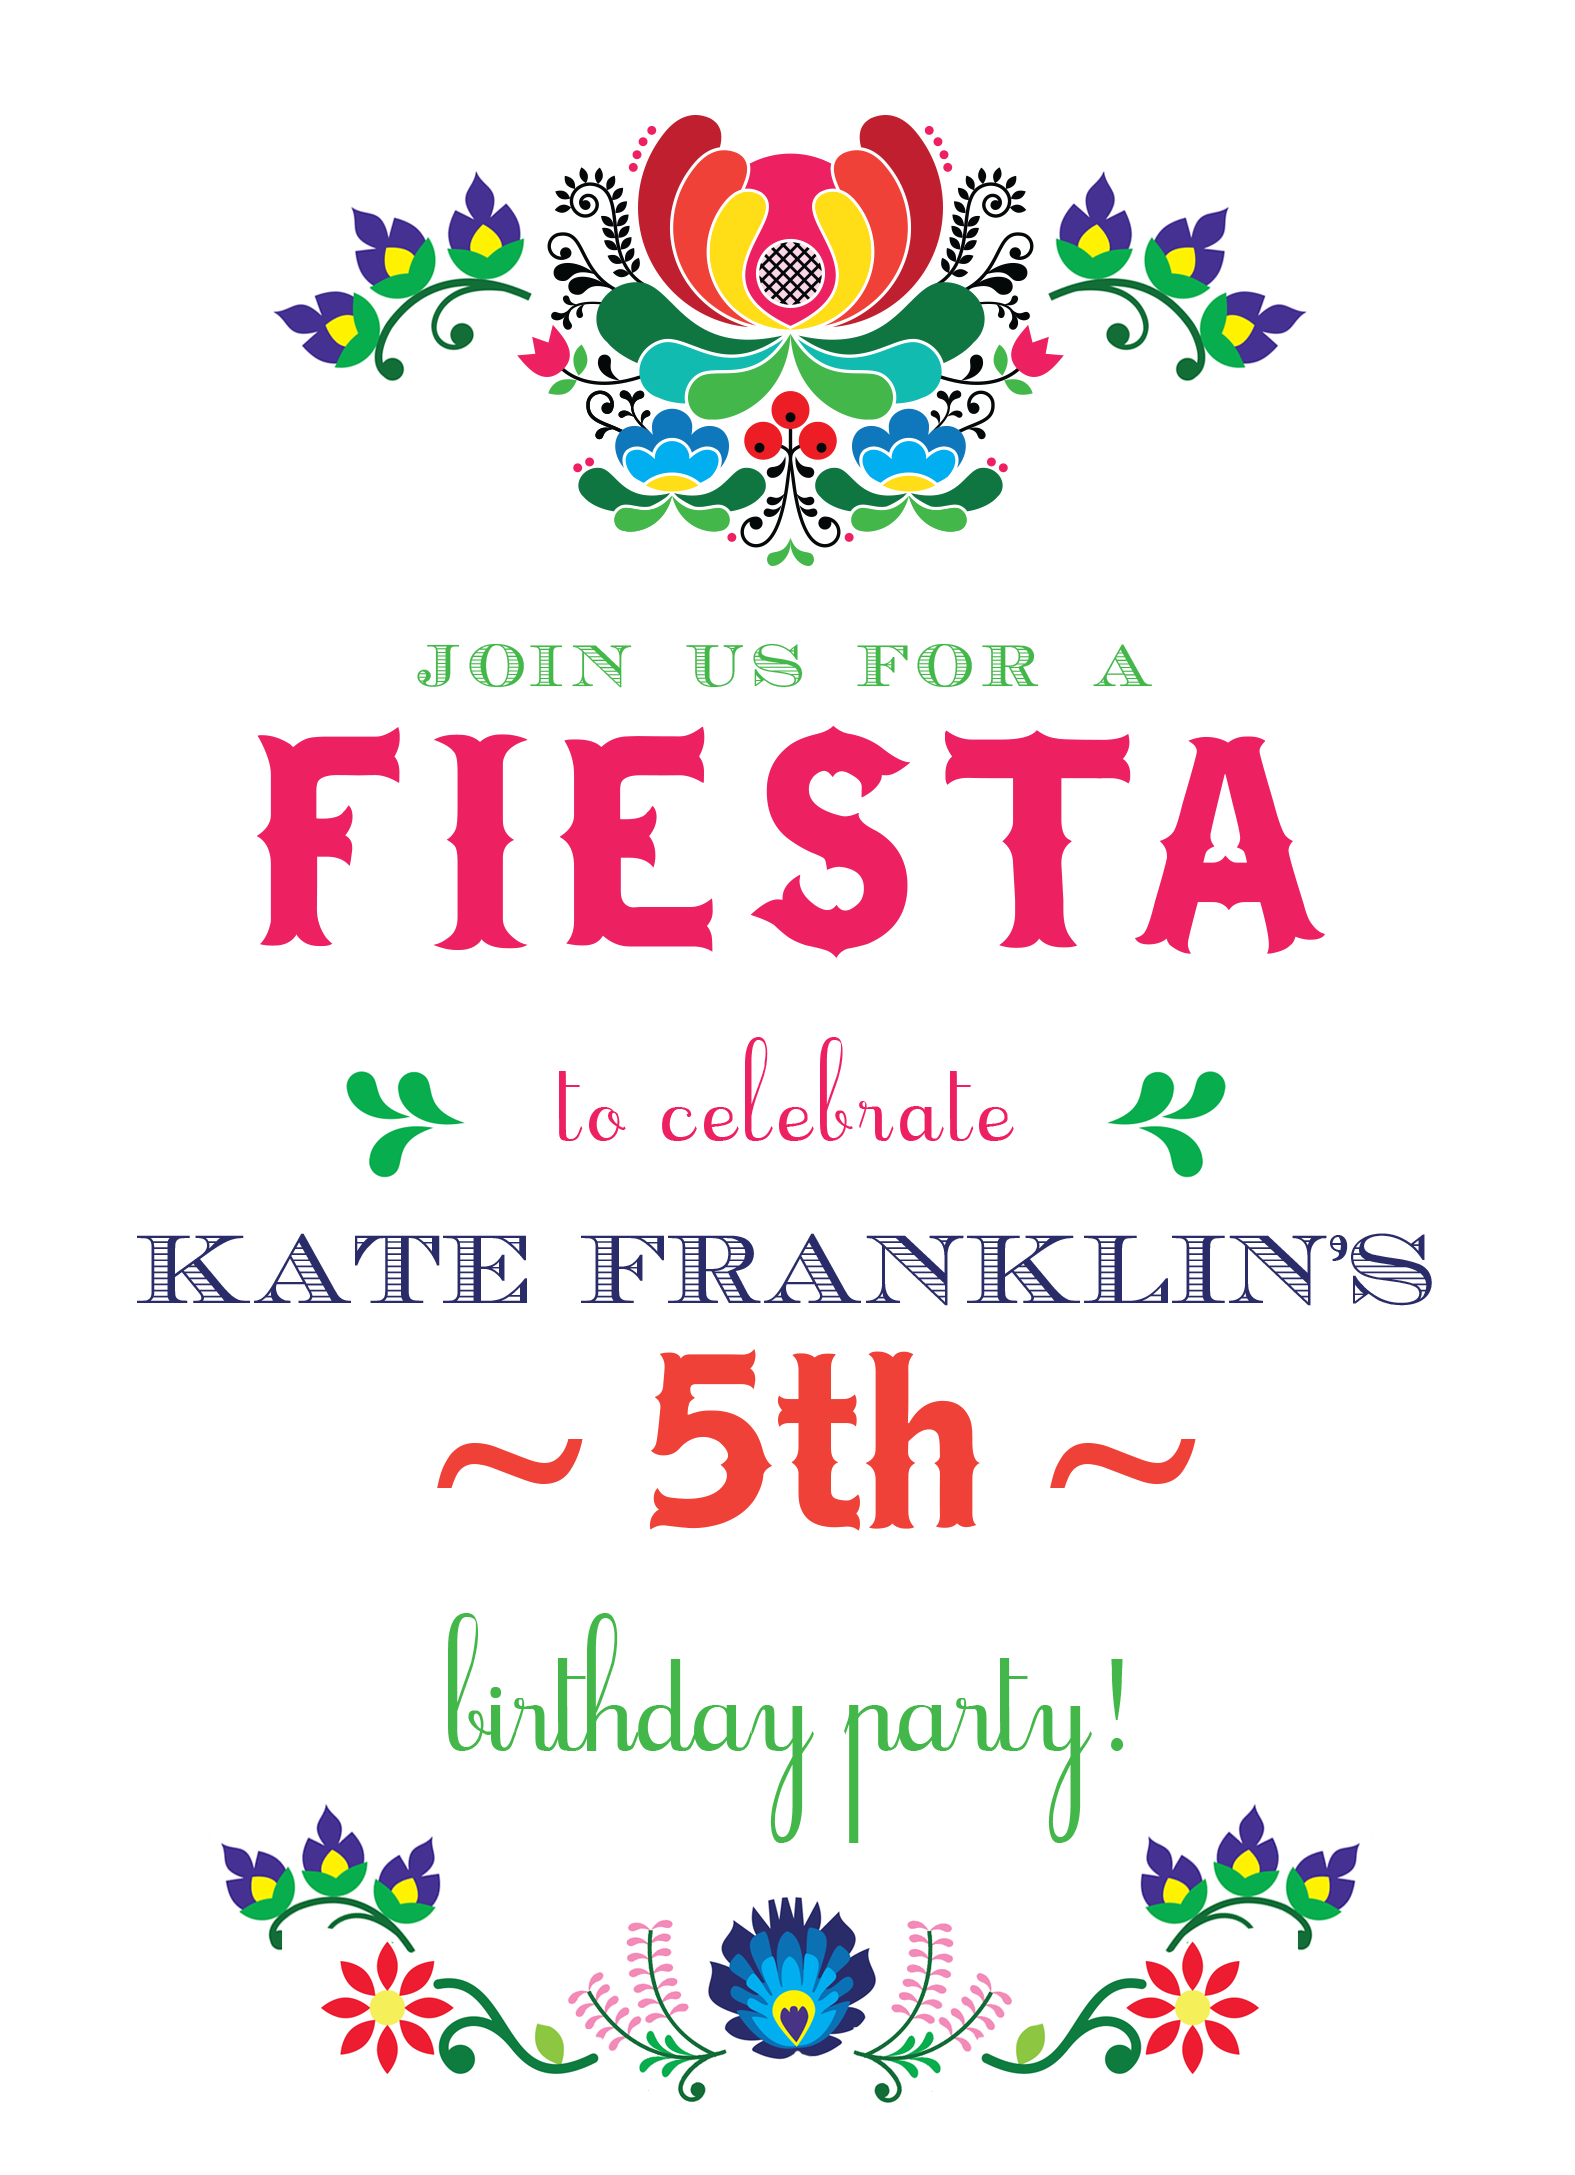 Invite friends and family to your fiesta birthday party invite friends and family to your fiesta birthday party invitation catprint design 505 filmwisefo